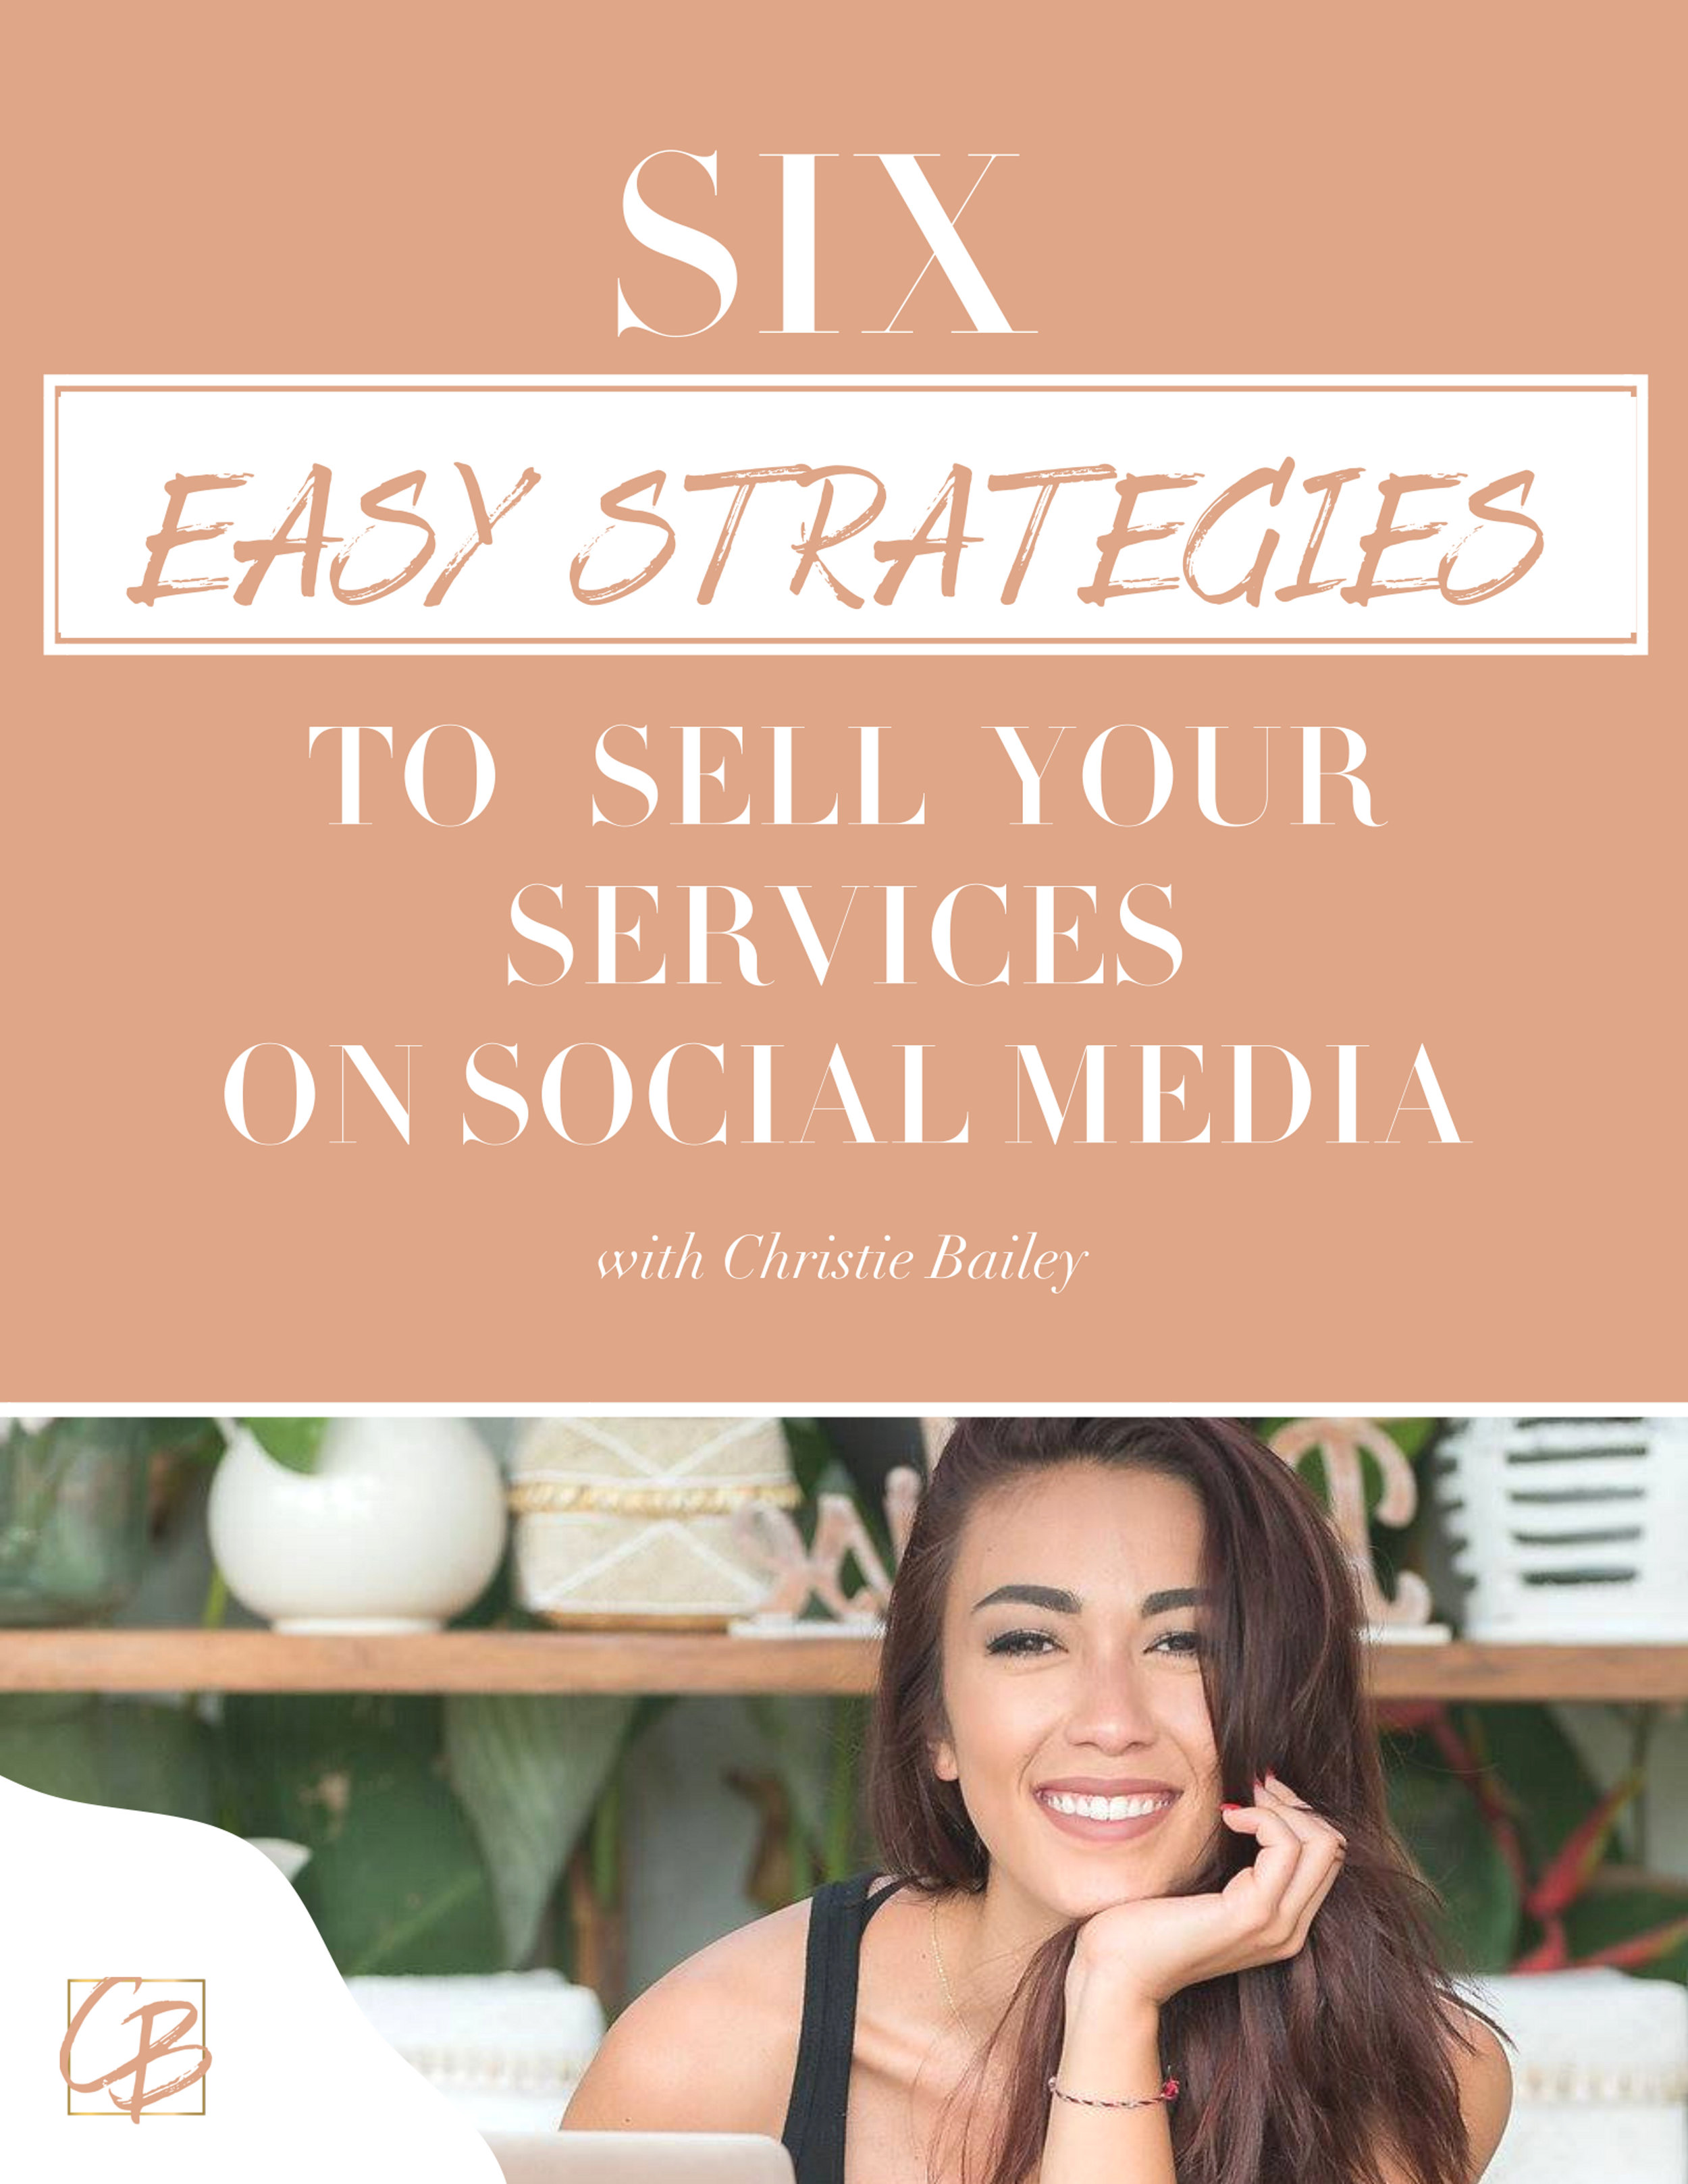 6 Easy Strategies To Sell Your Services on Social Media.jpg